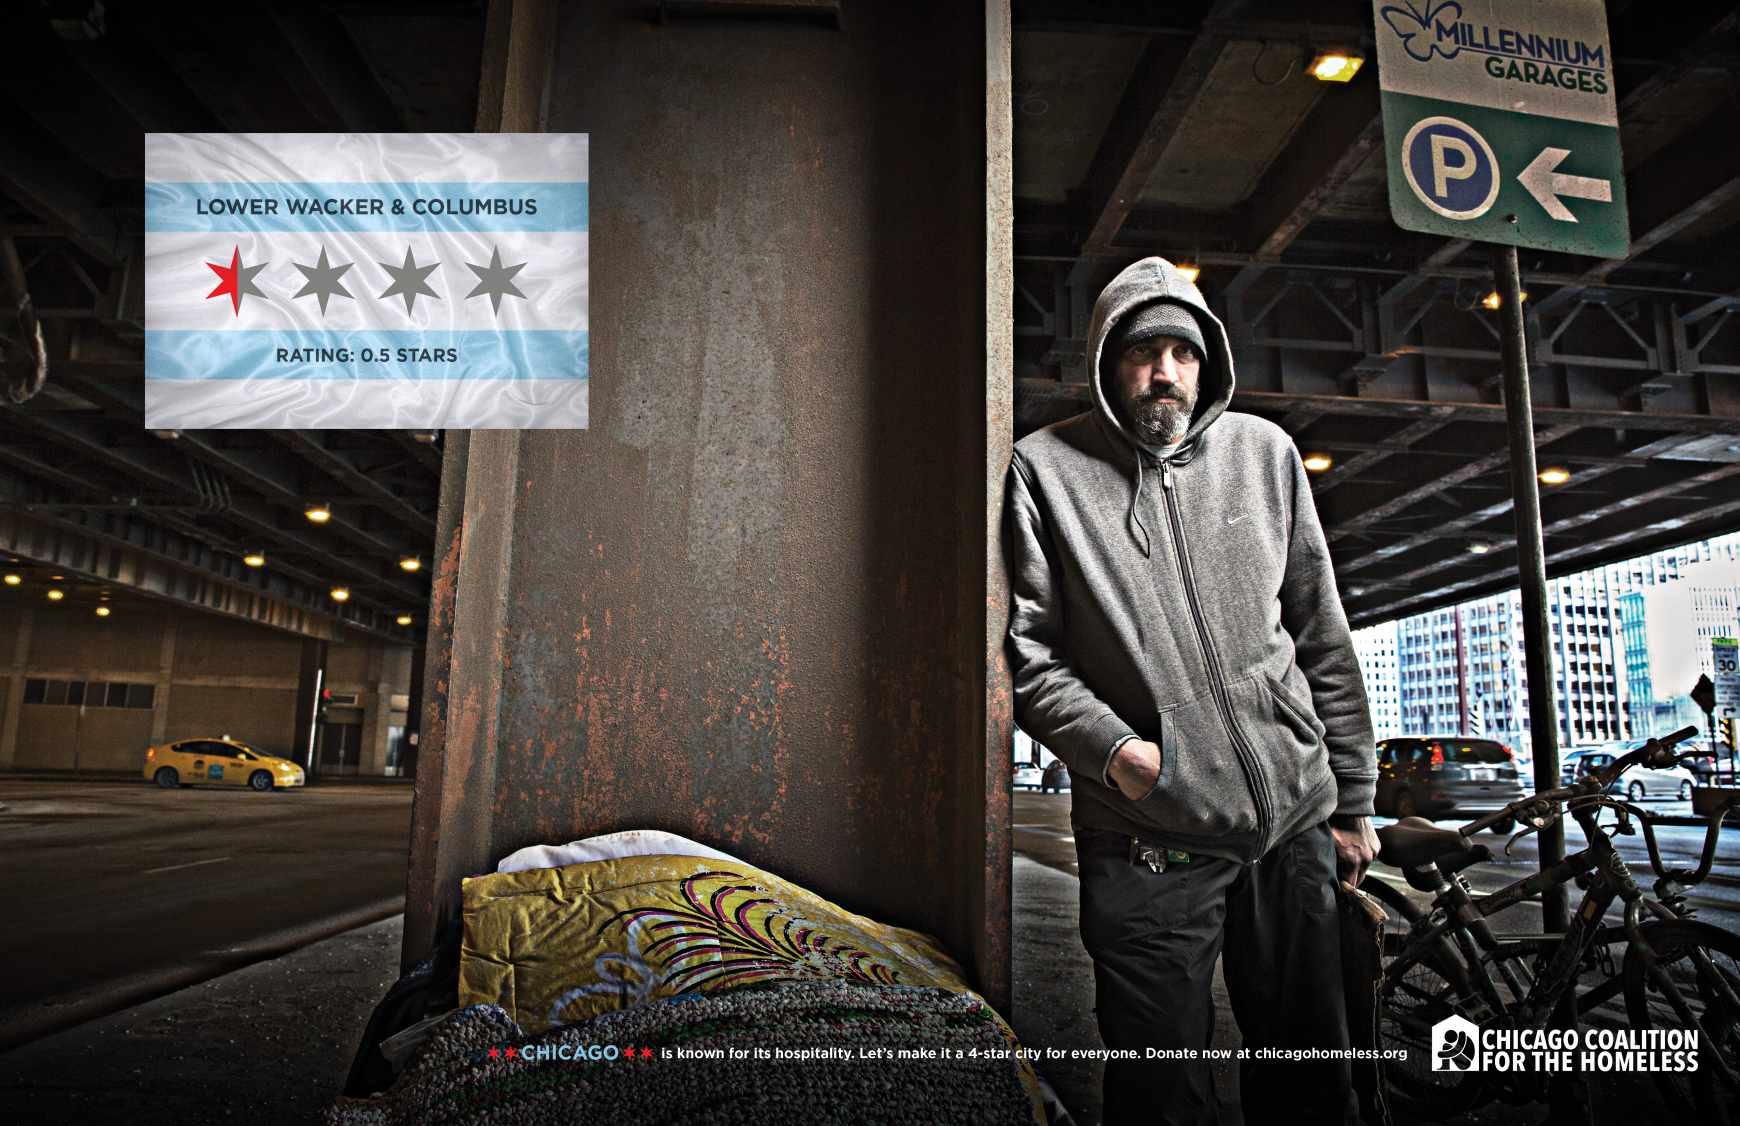 Chicago Collation For The Homeless Print Ad - 4 STAR CITY - LOWER WACKER AND COLUMBUS